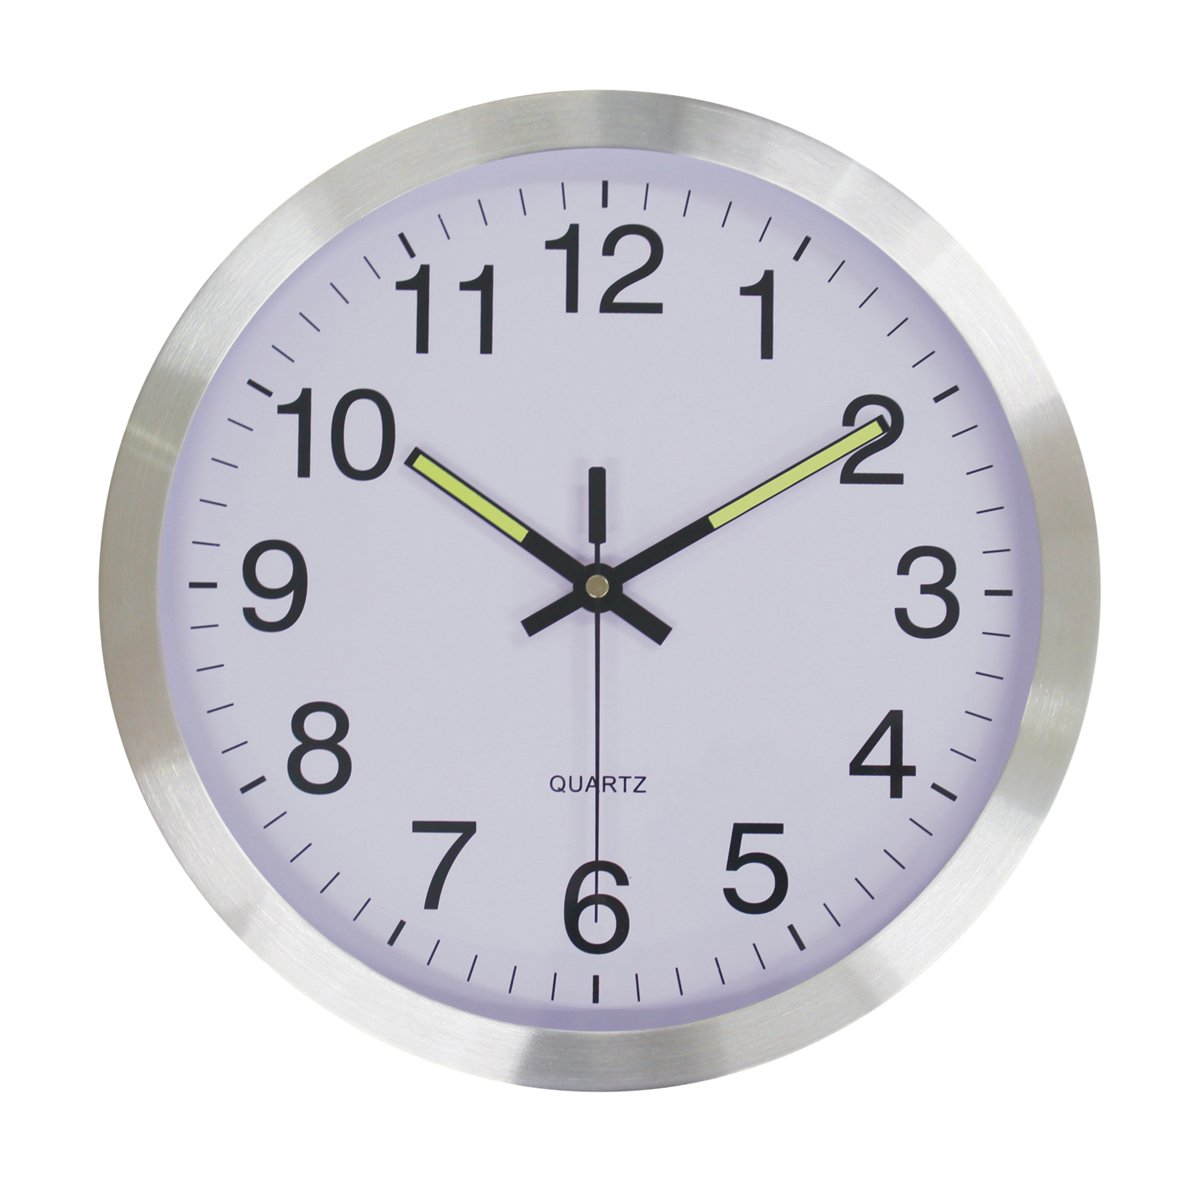 Justnile 12 inch sweep silent wall clock glow in the dark hands justnile 12 inch sweep silent wall clock glow in the dark hands silver frame amipublicfo Images